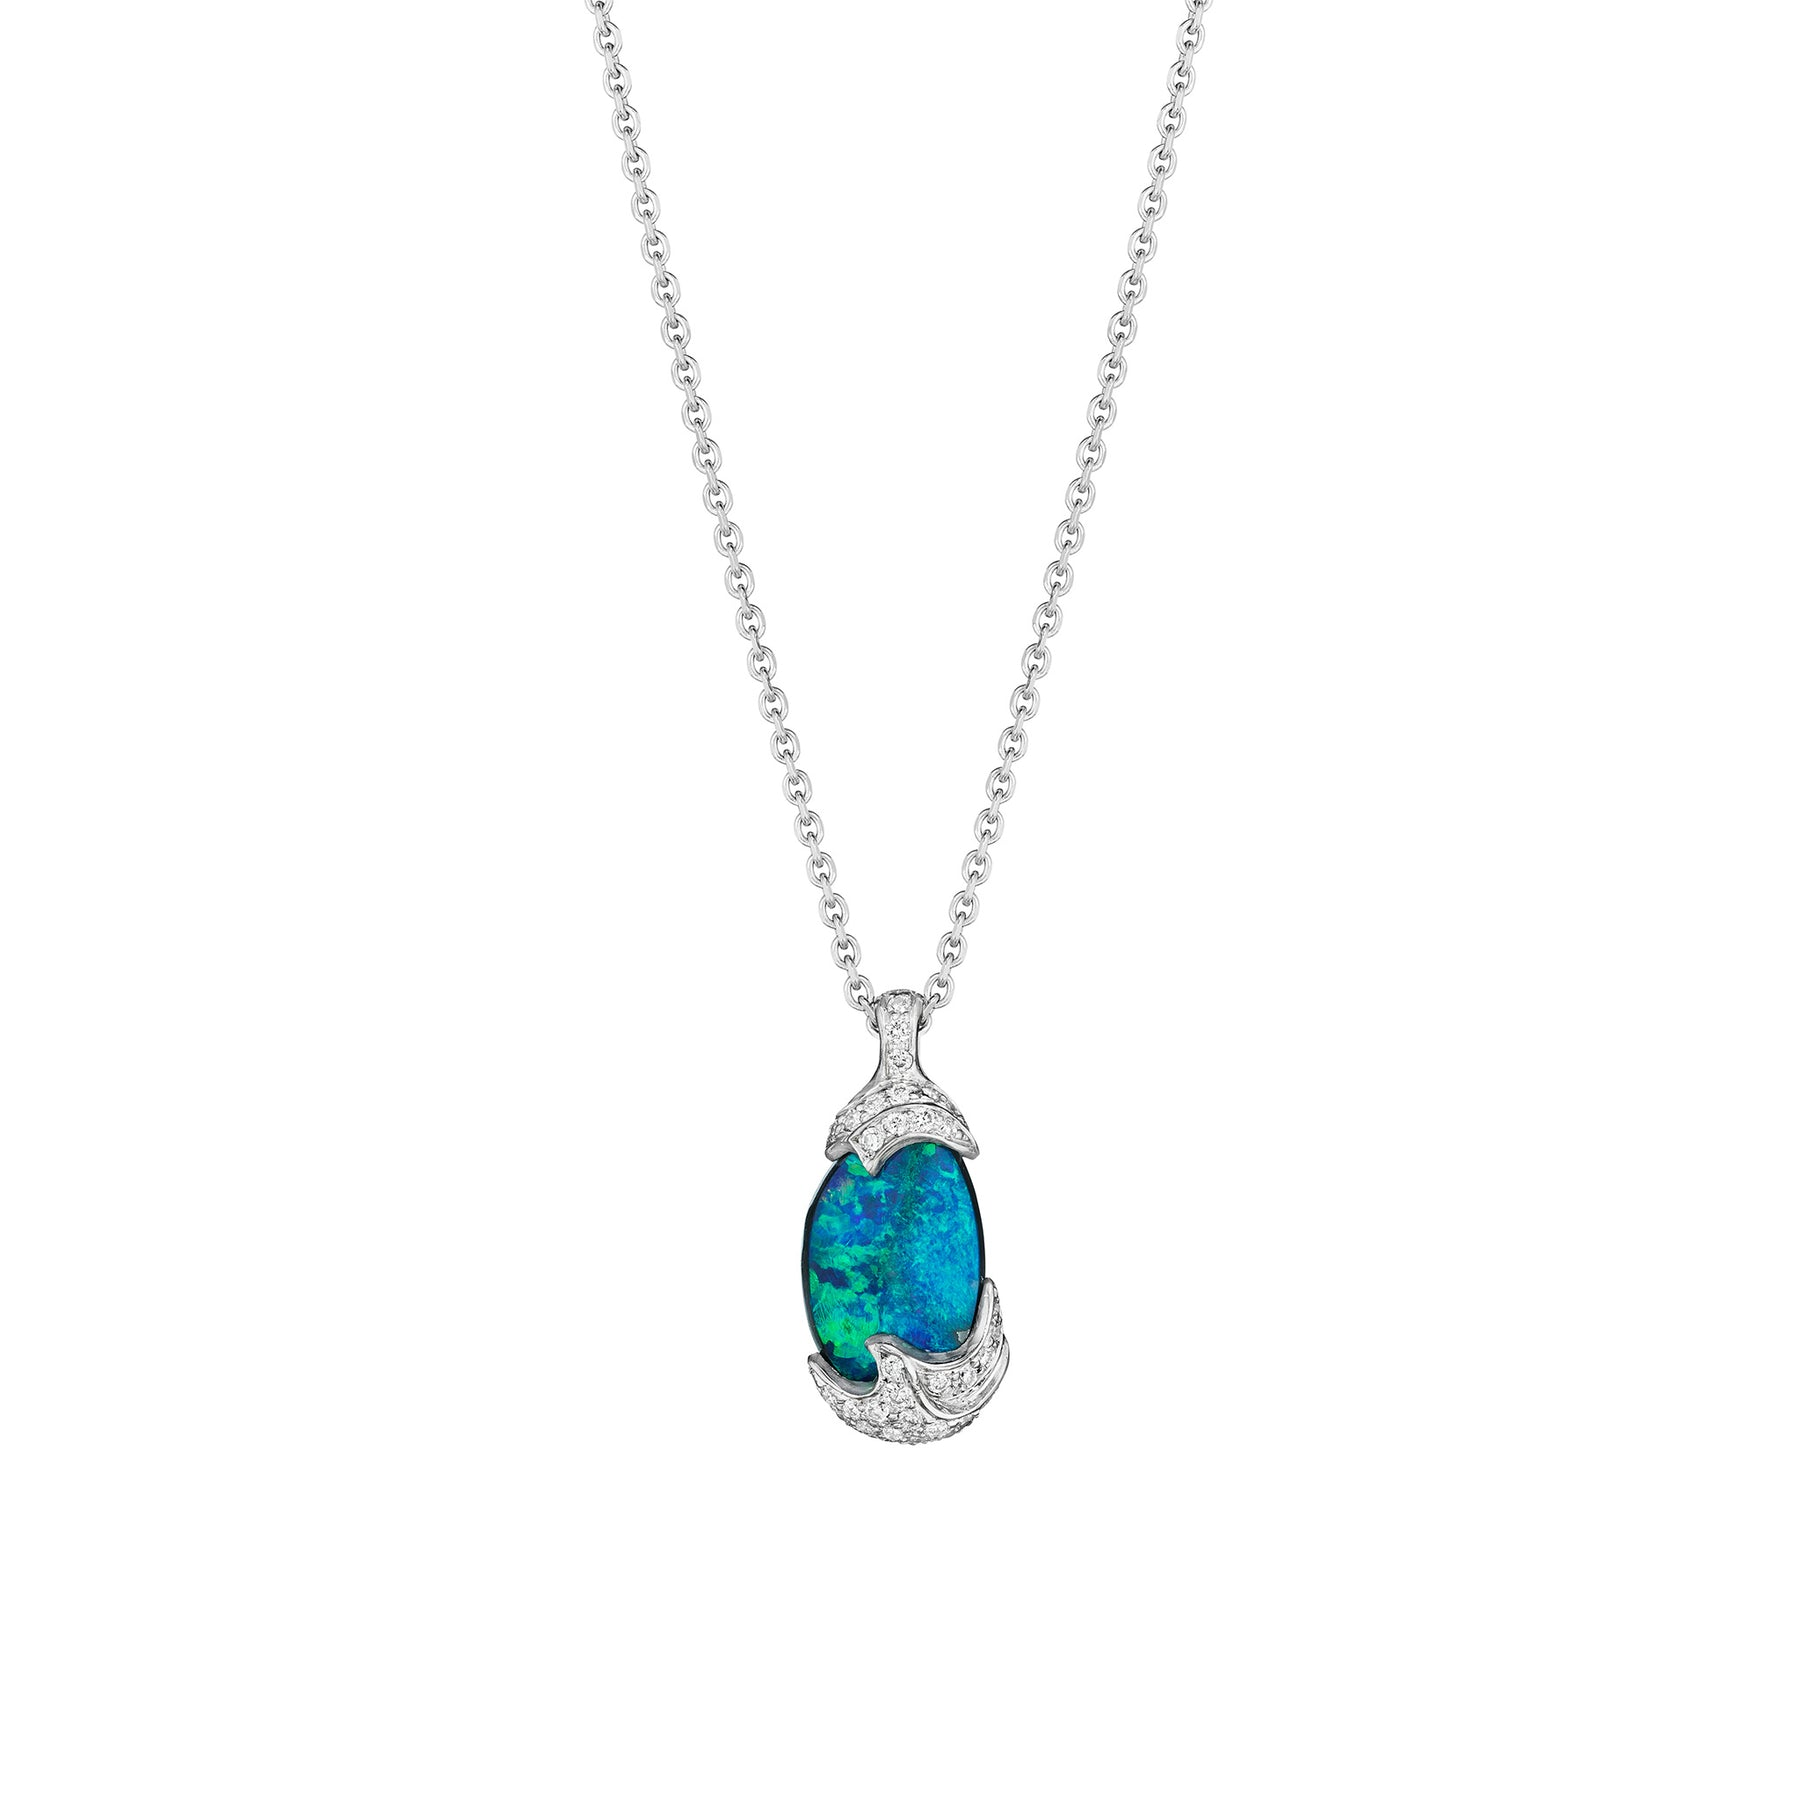 Mimi-So-ZoZo-Boulder-Opal-Pendant-Necklace_18k White Gold